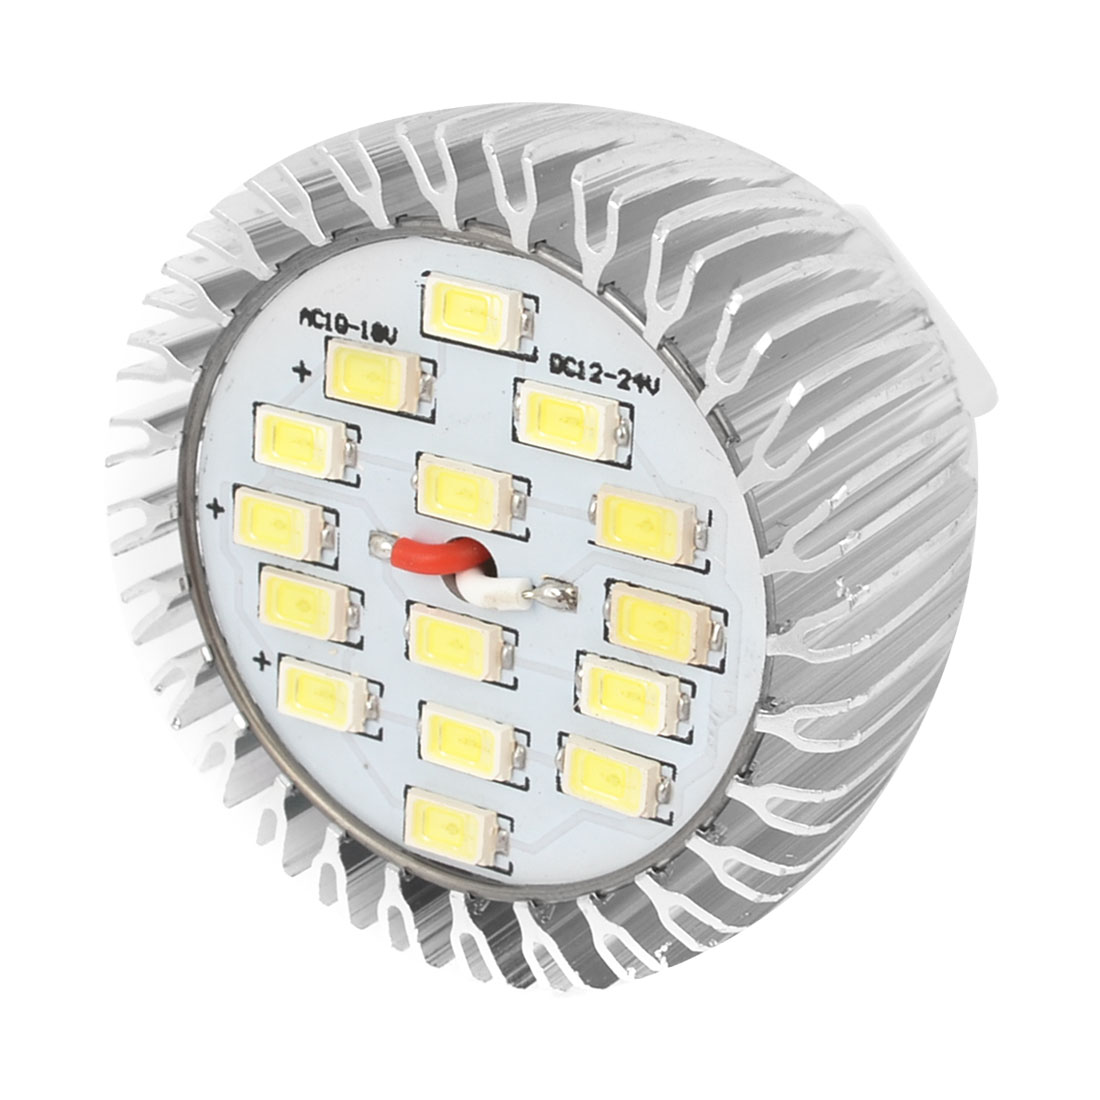 White 7W MR16 Socket 5730 SMD 15-LED Spotlight Bulb Lamp AC 10-18V